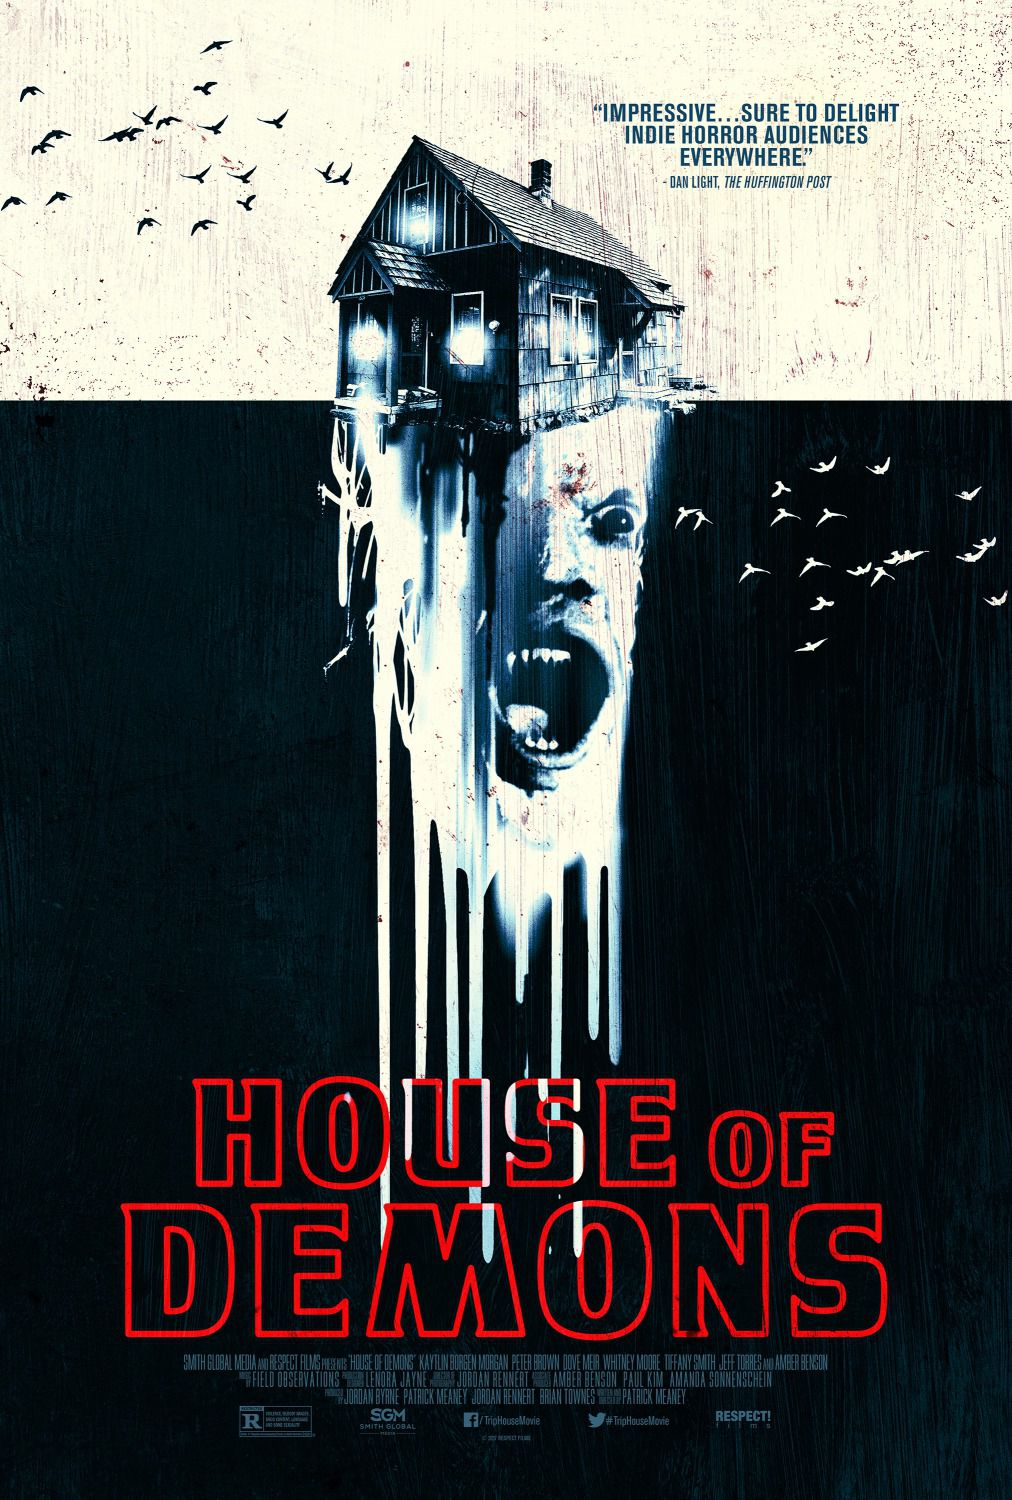 House of Demons - Trip House - Cast: Amber Benson, Whitney Moore - horror film poster